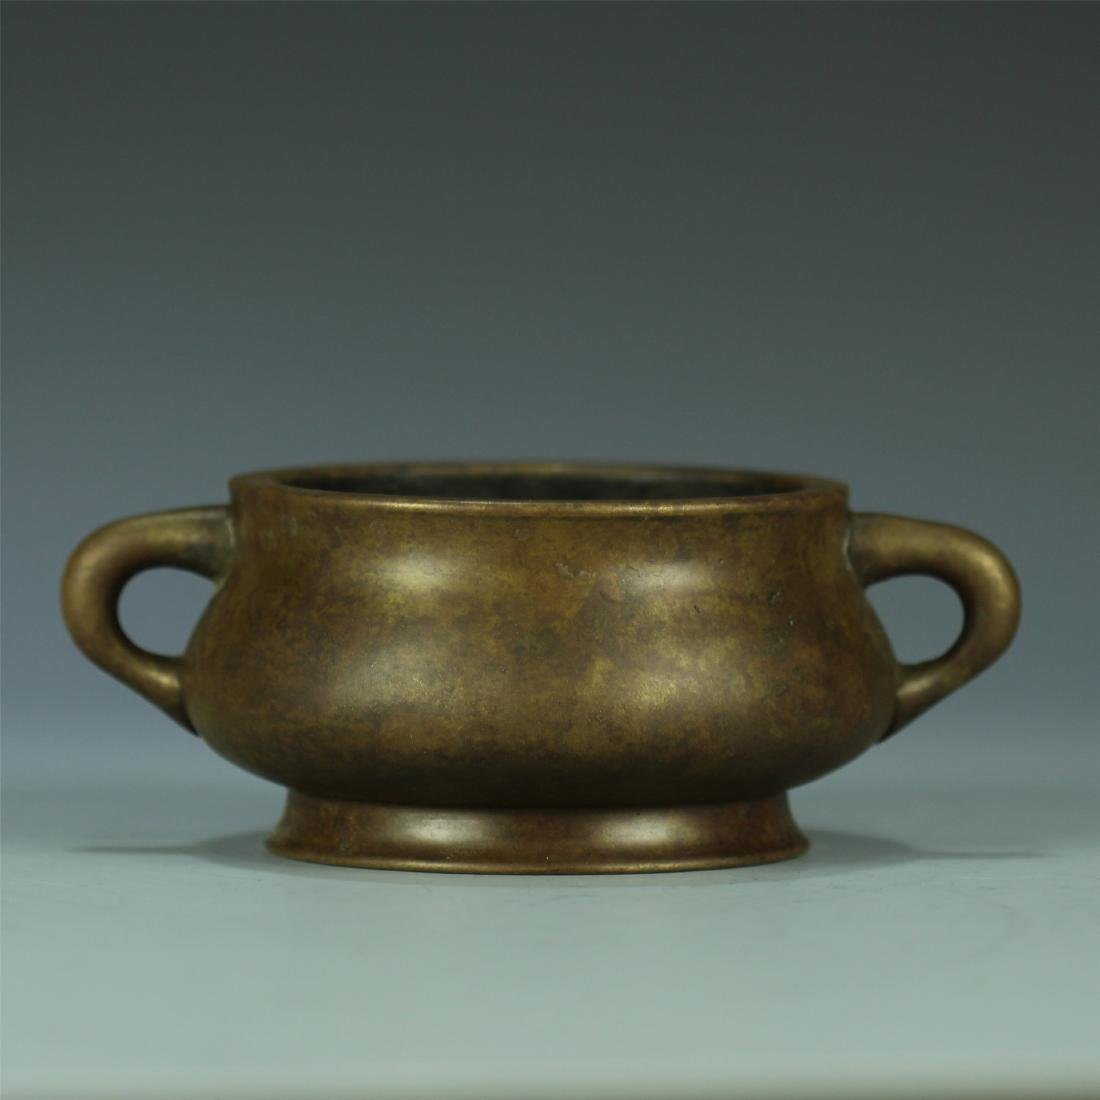 CAST BRONZE CENSER